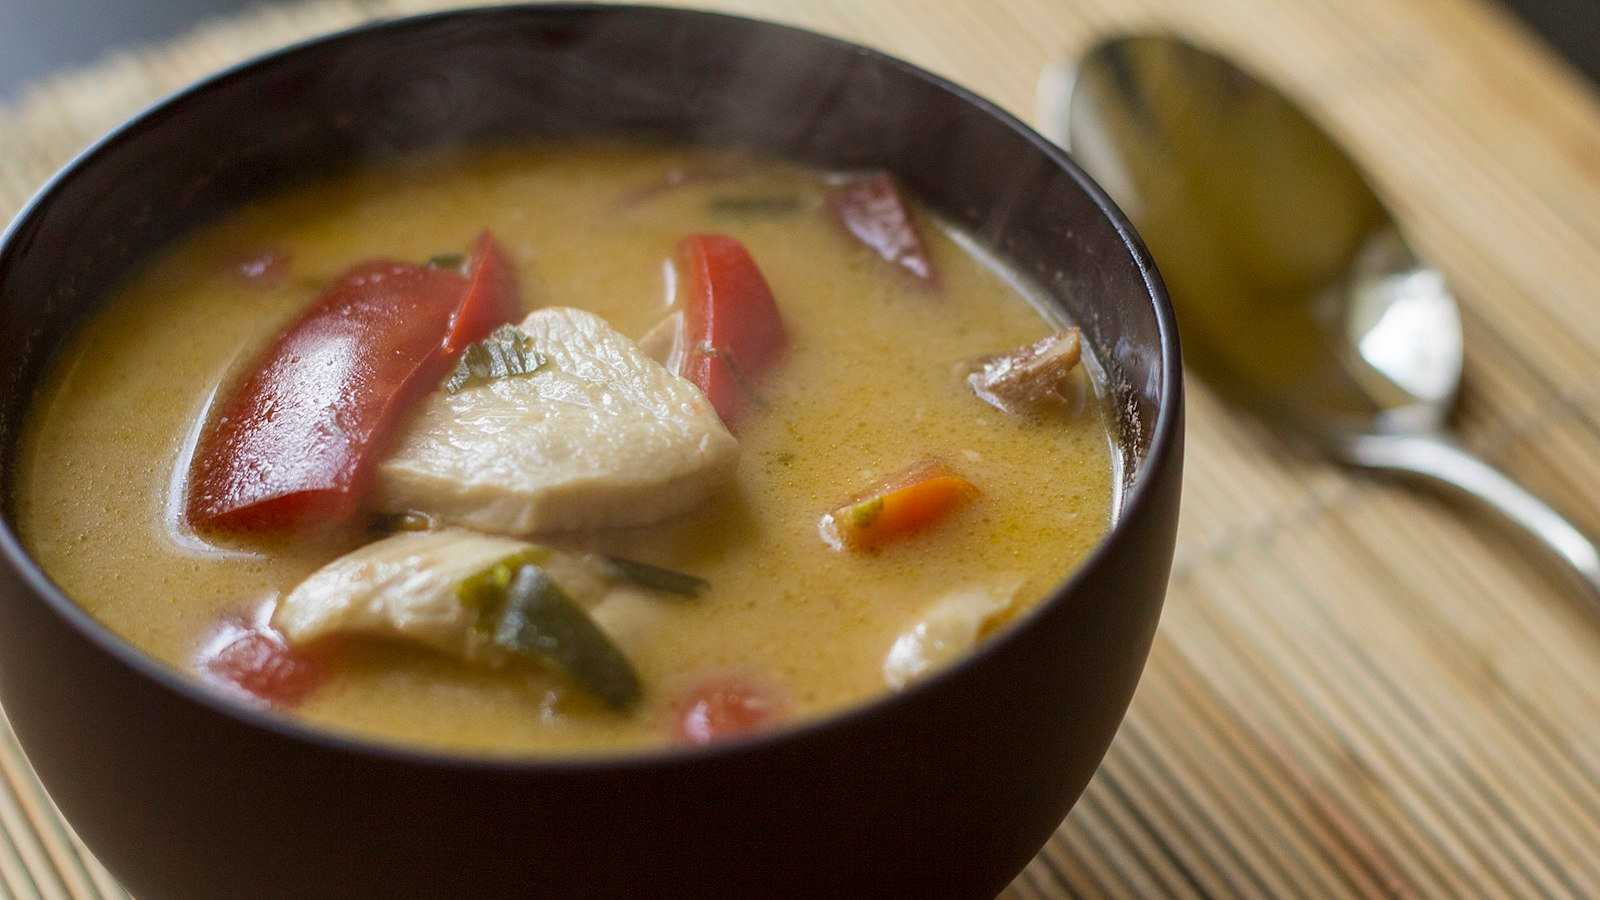 Tom kha gai is another spicy soup from Thailand, with coconut milk for creaminess and usually chicken as the protein